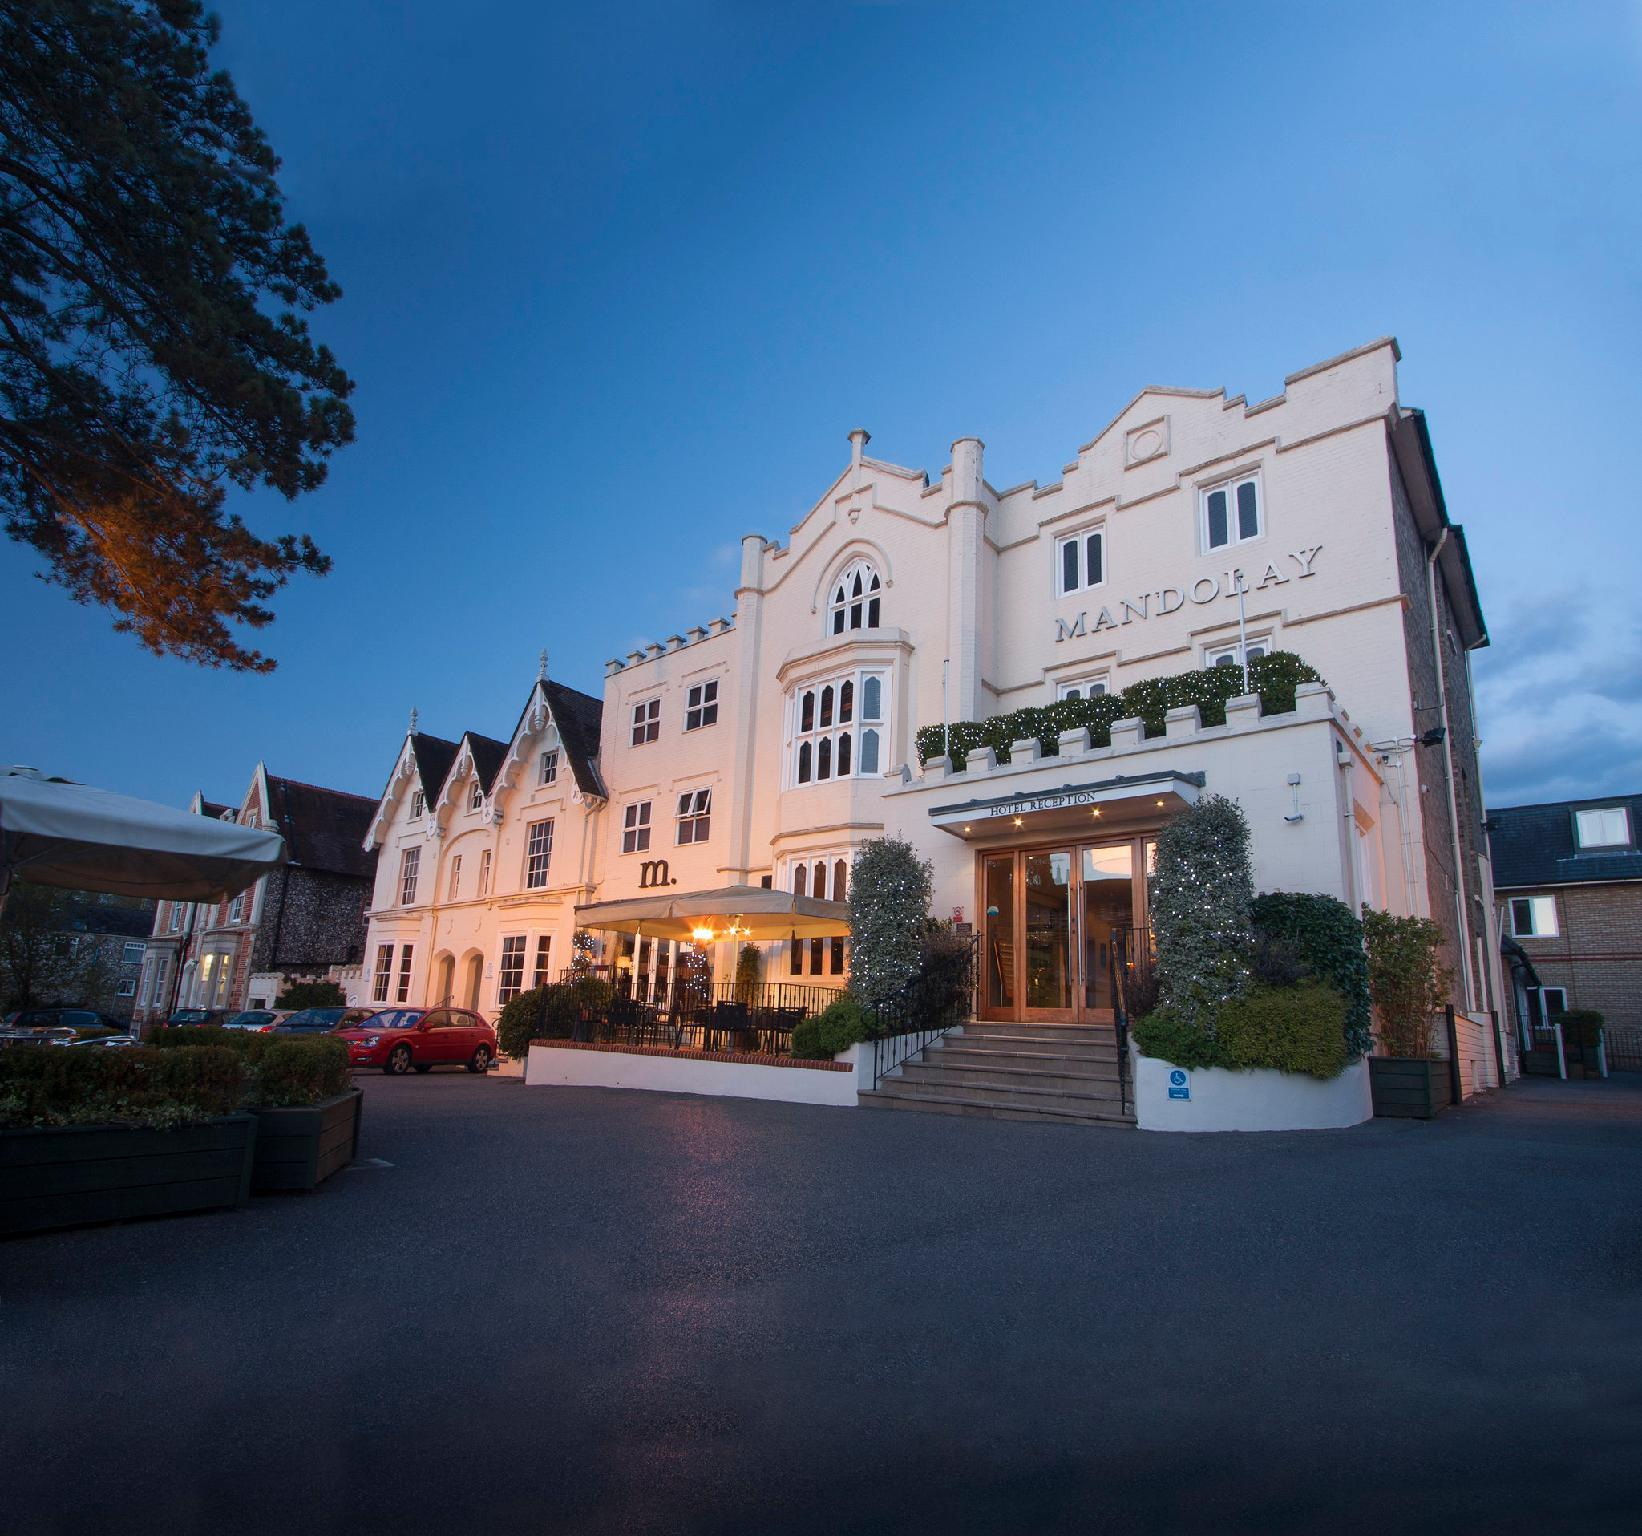 The Mandolay Hotel and Conference Centre, Surrey